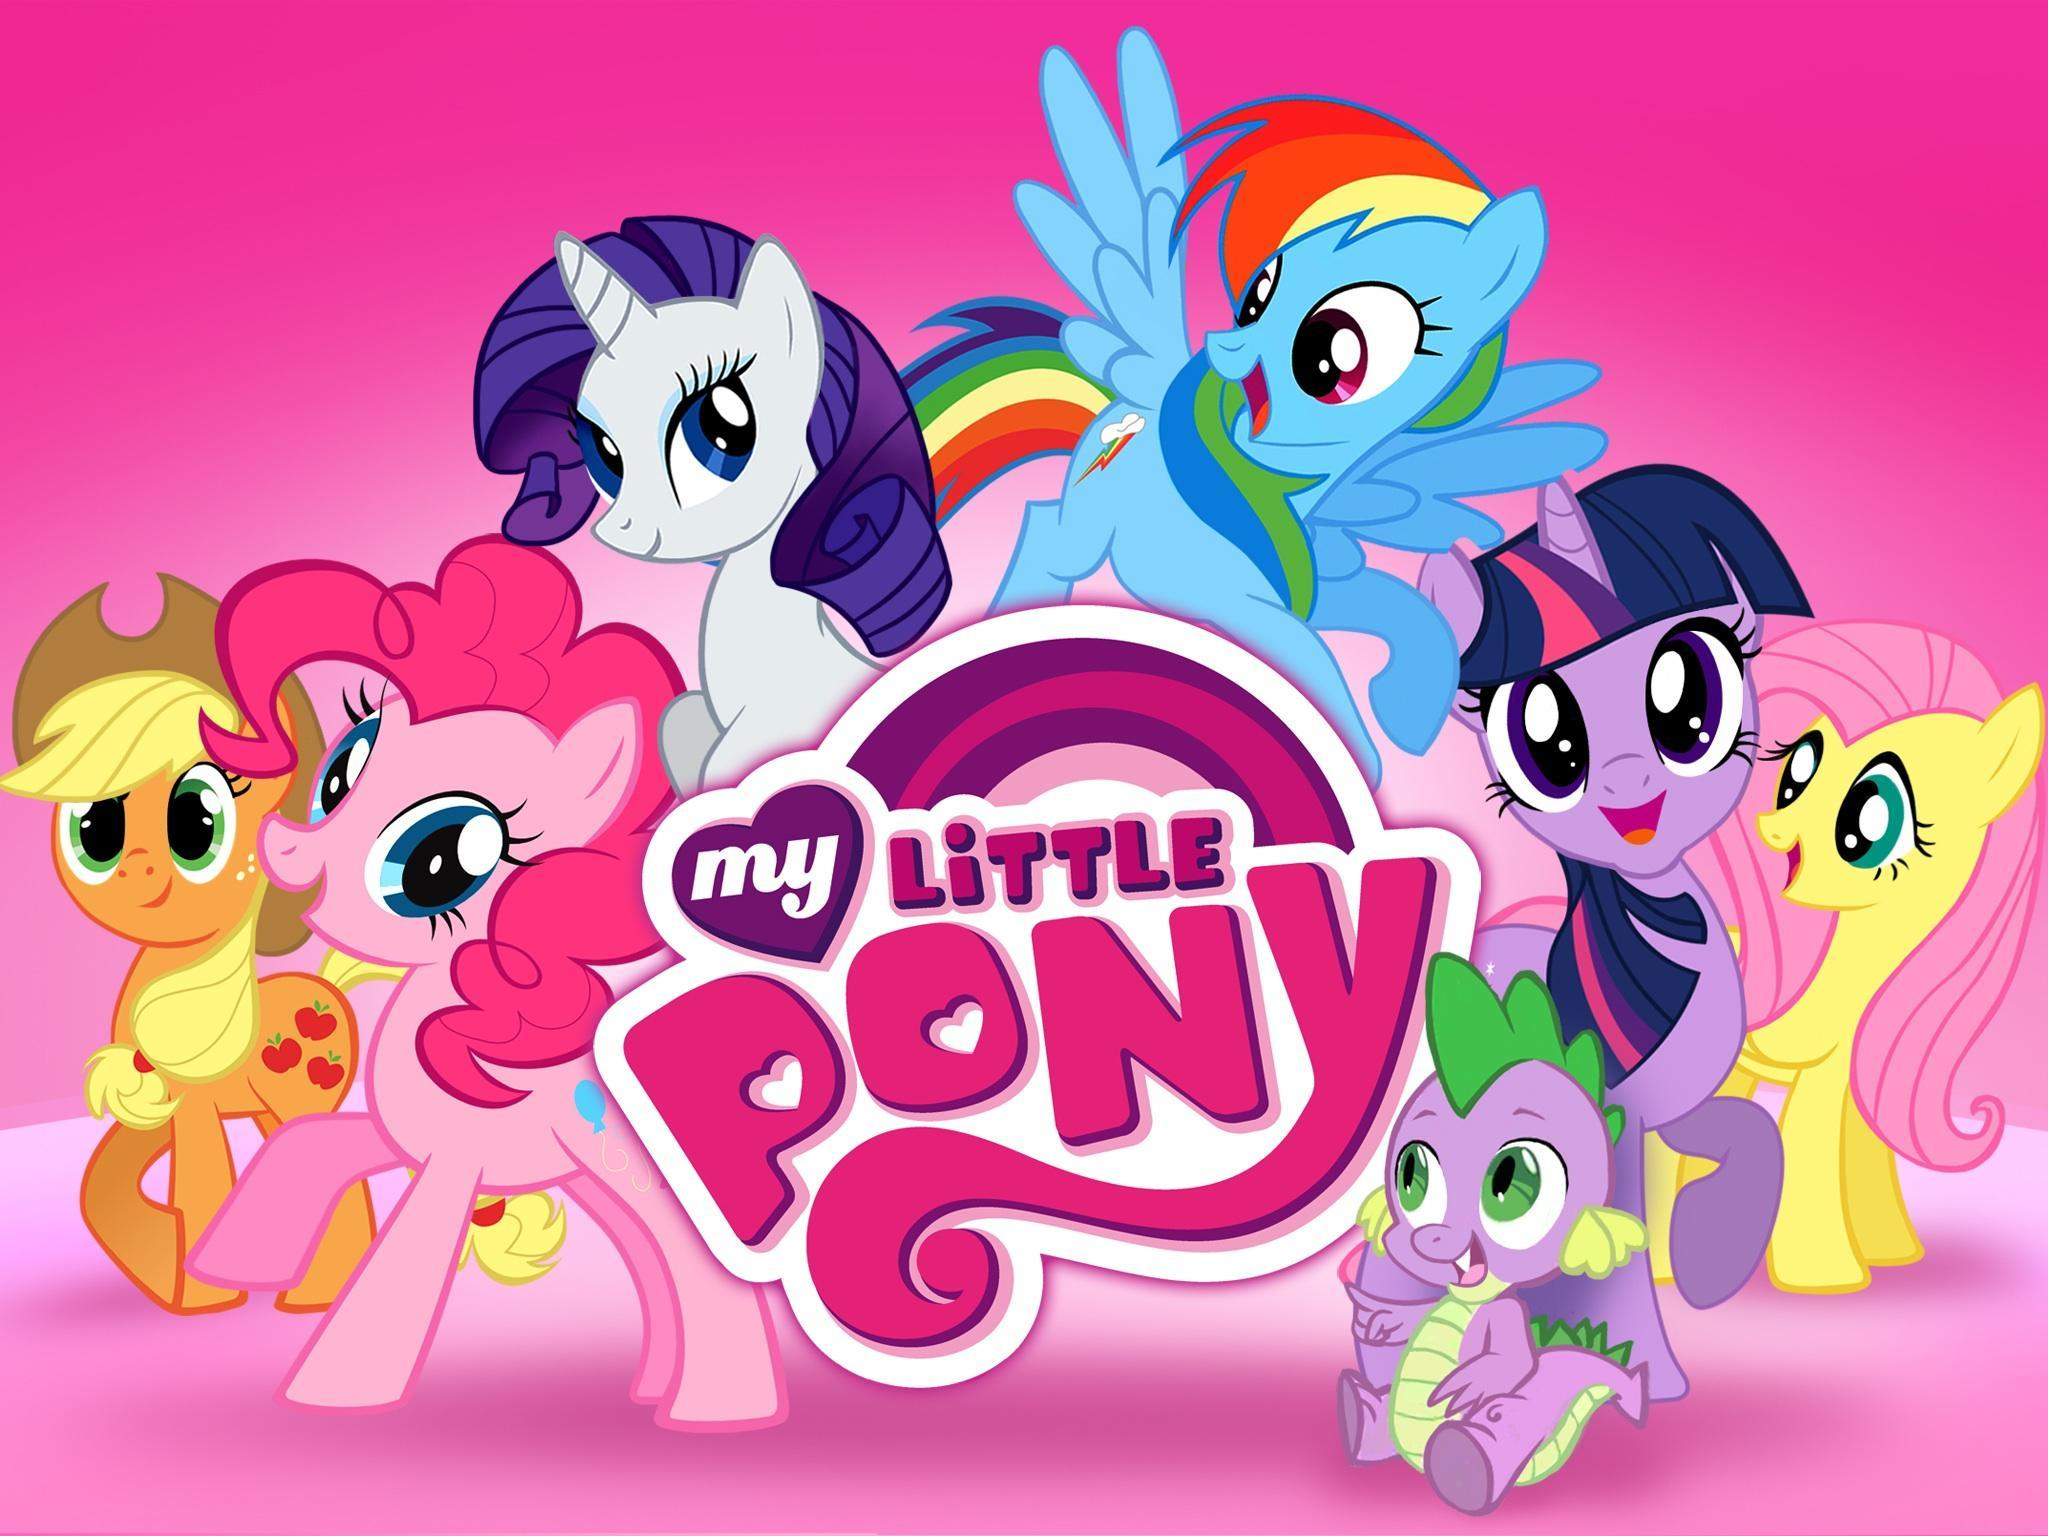 Aw! Last question. Who is your favorite MLP?